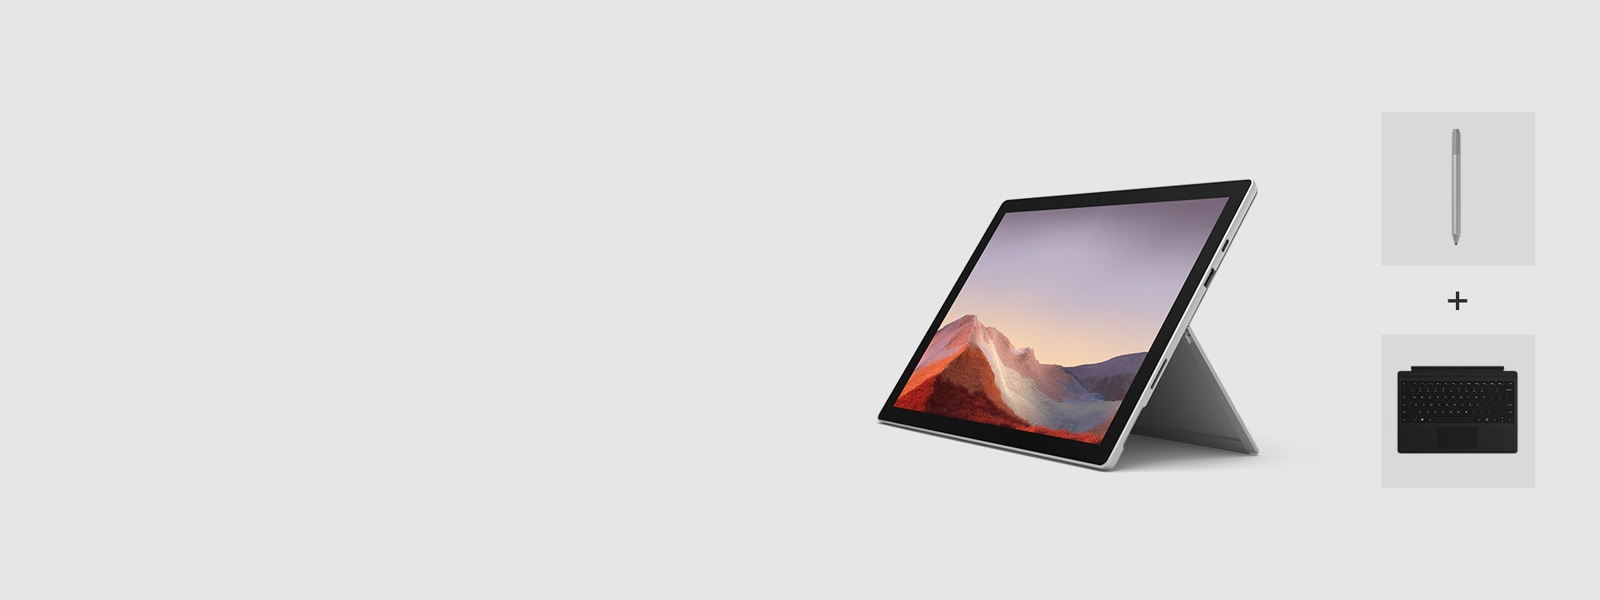 Surface Pro 7 with Intel i5 with Type Cover and Surface Pen